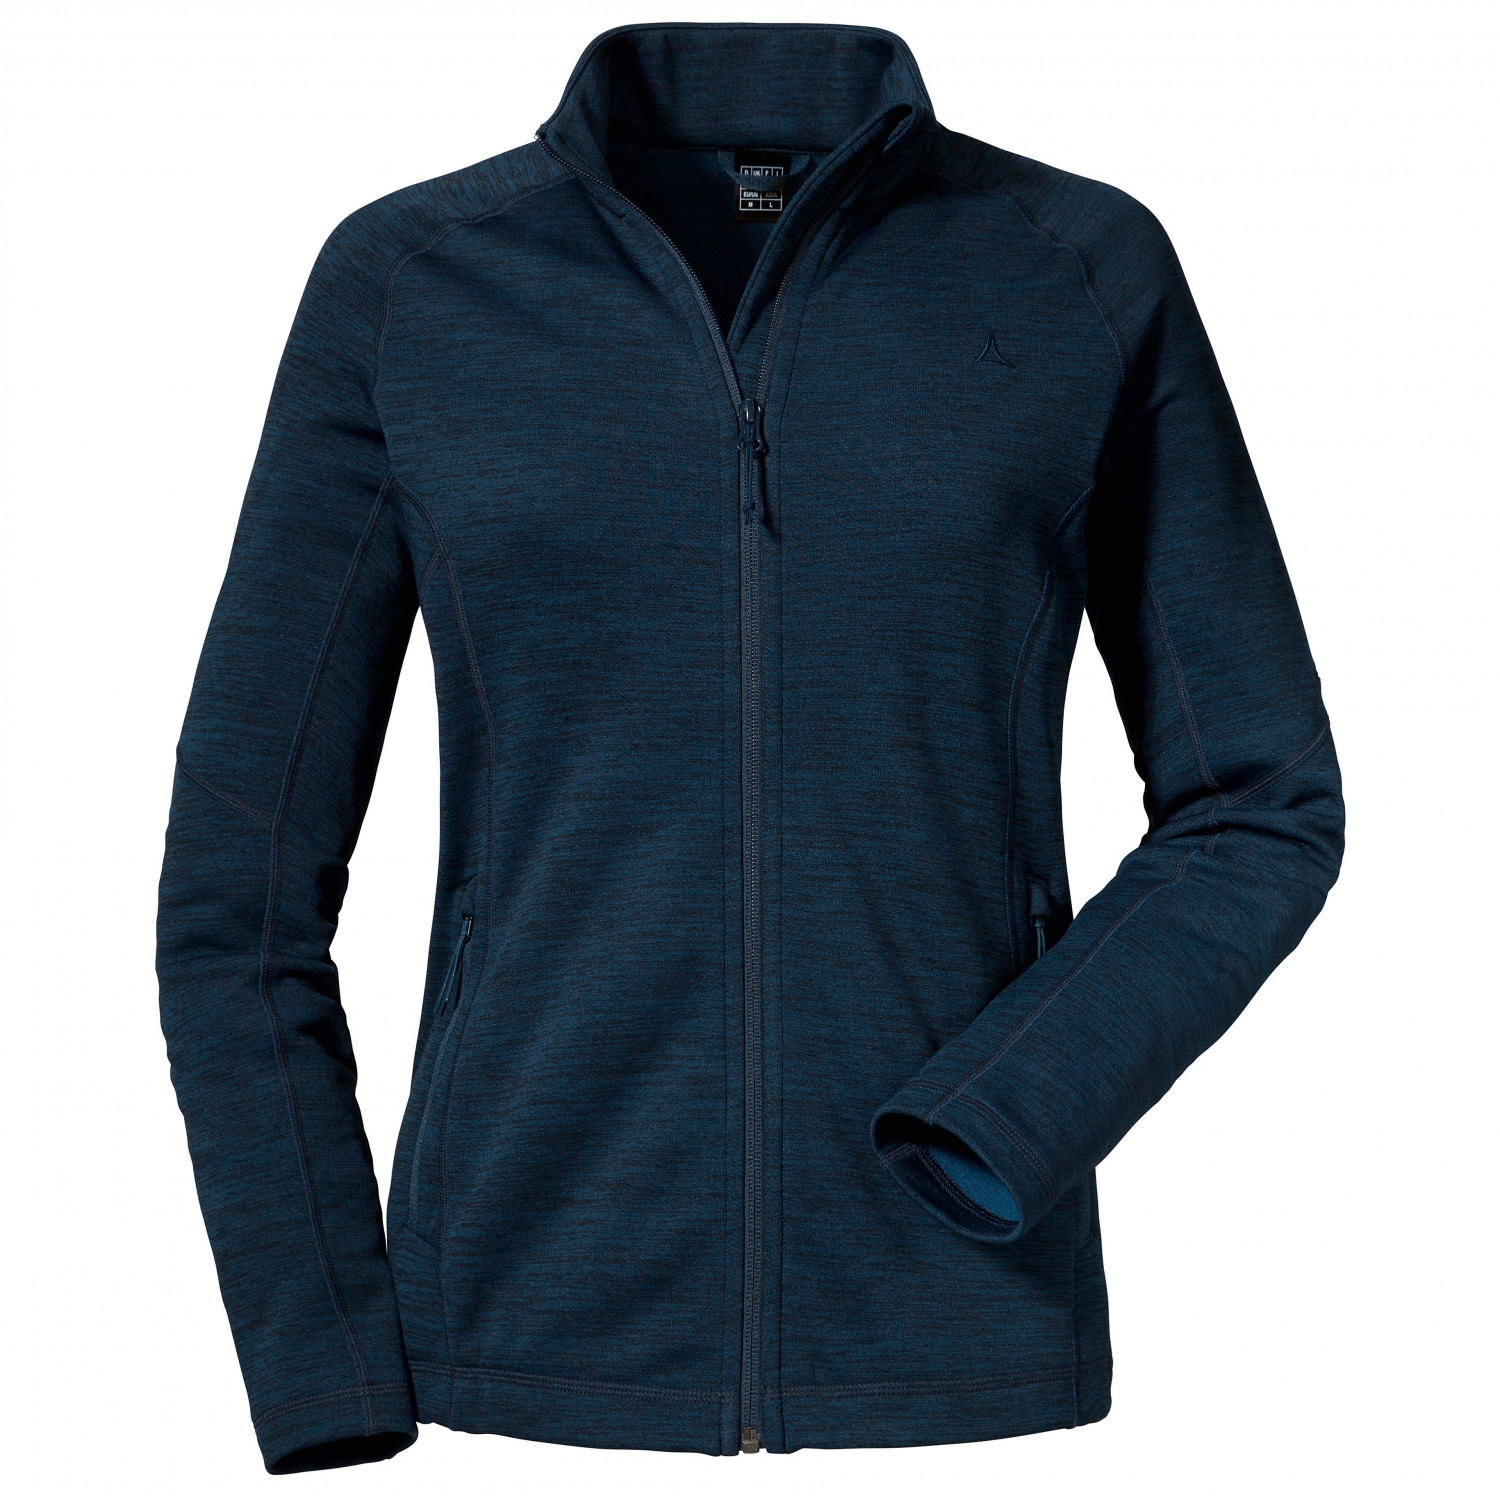 Schöffel Fleece Jacket Nagoya Womens Fleece Jacket